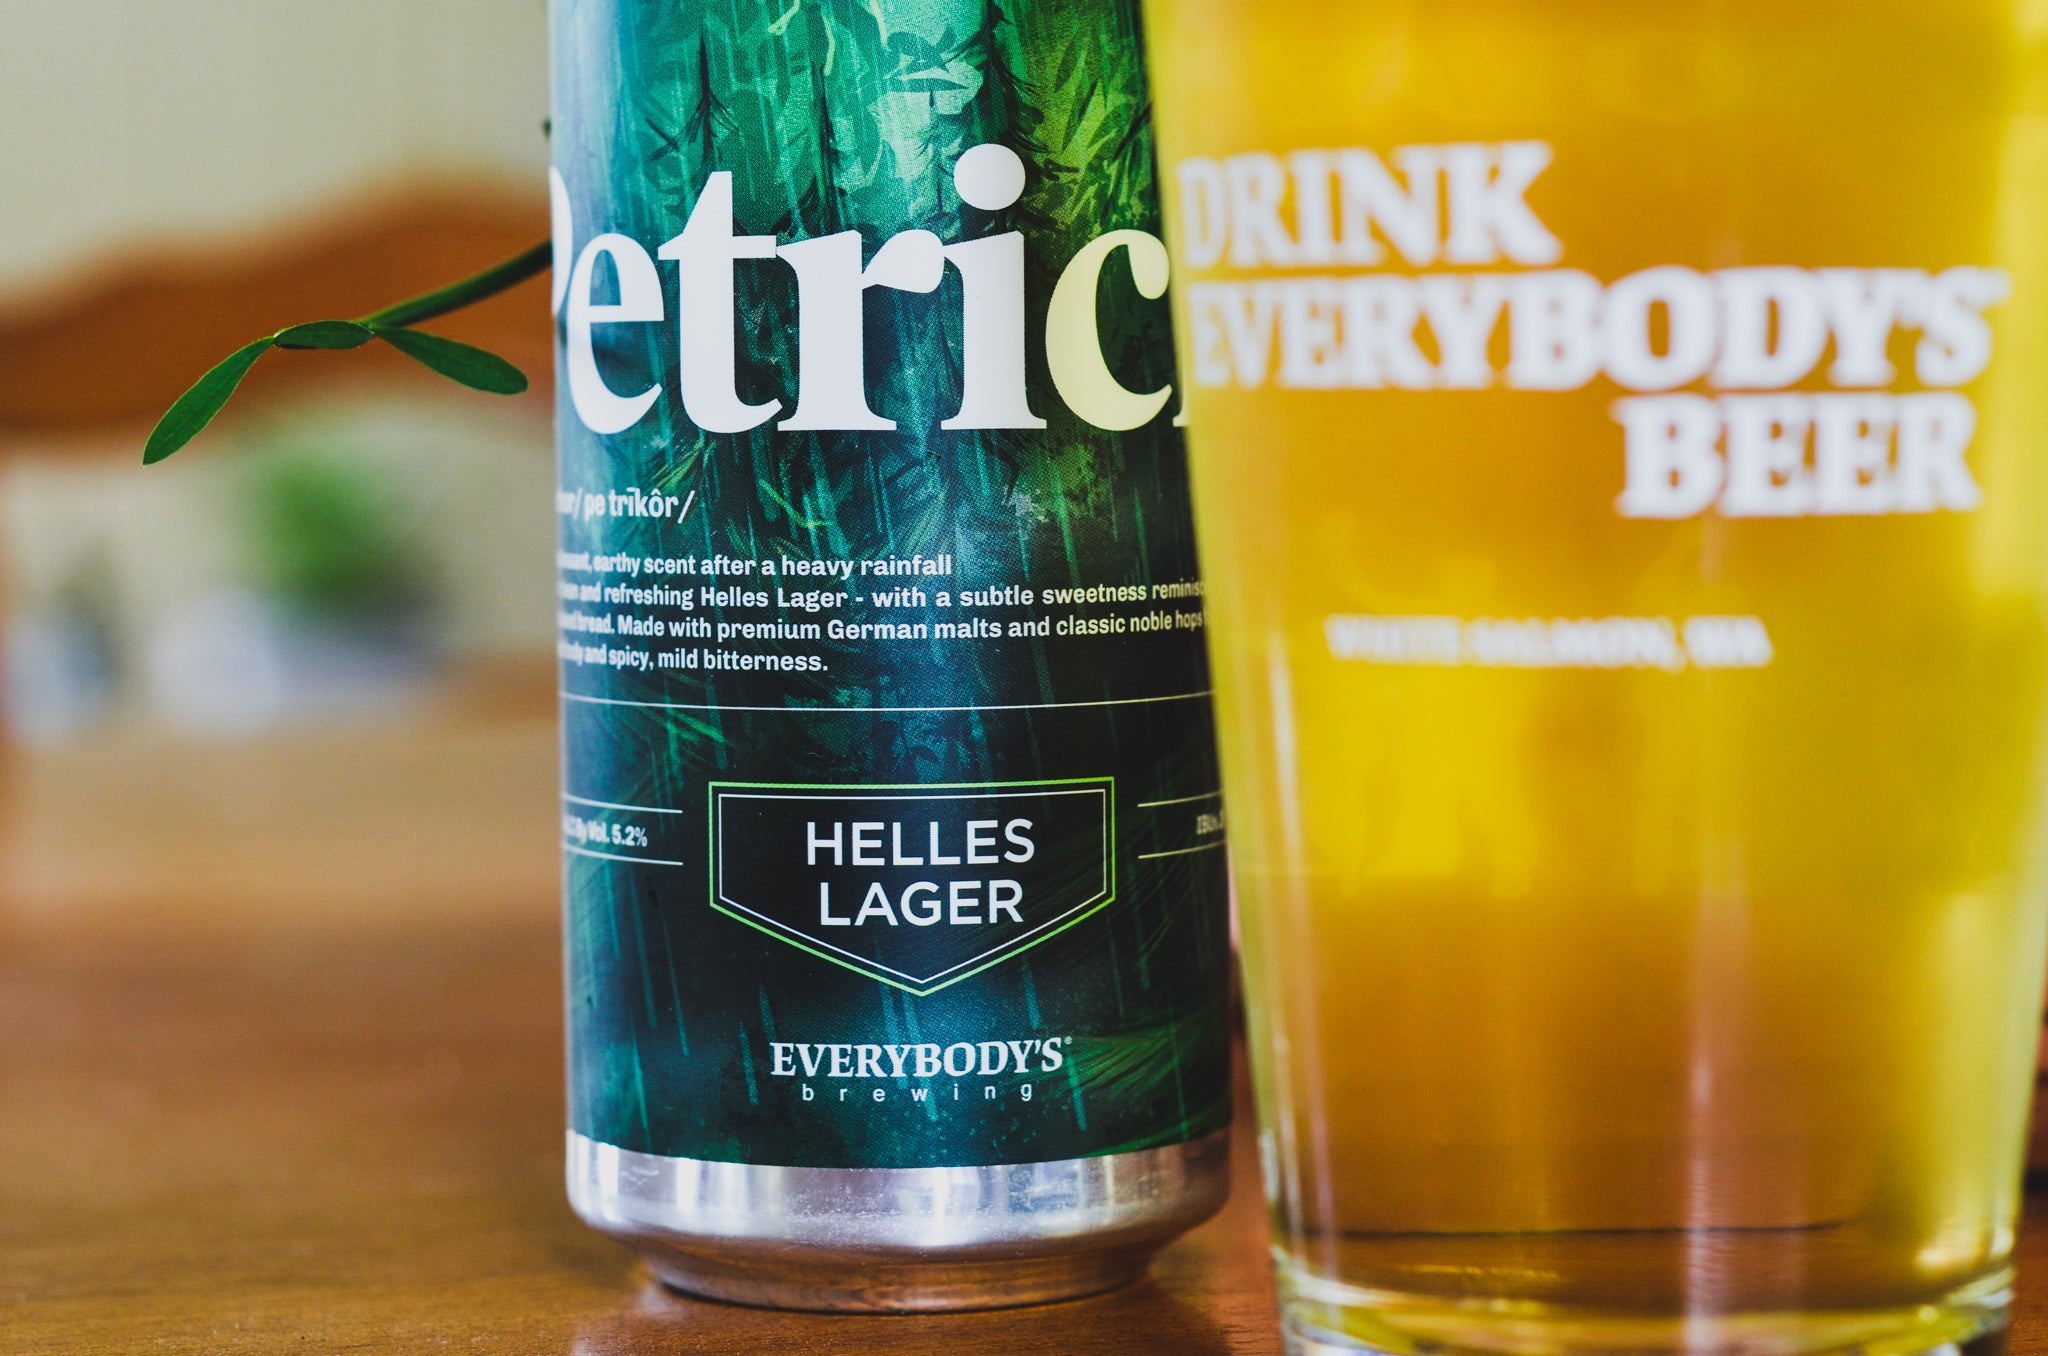 Everybody's Brewing Petrichor Helles Lager